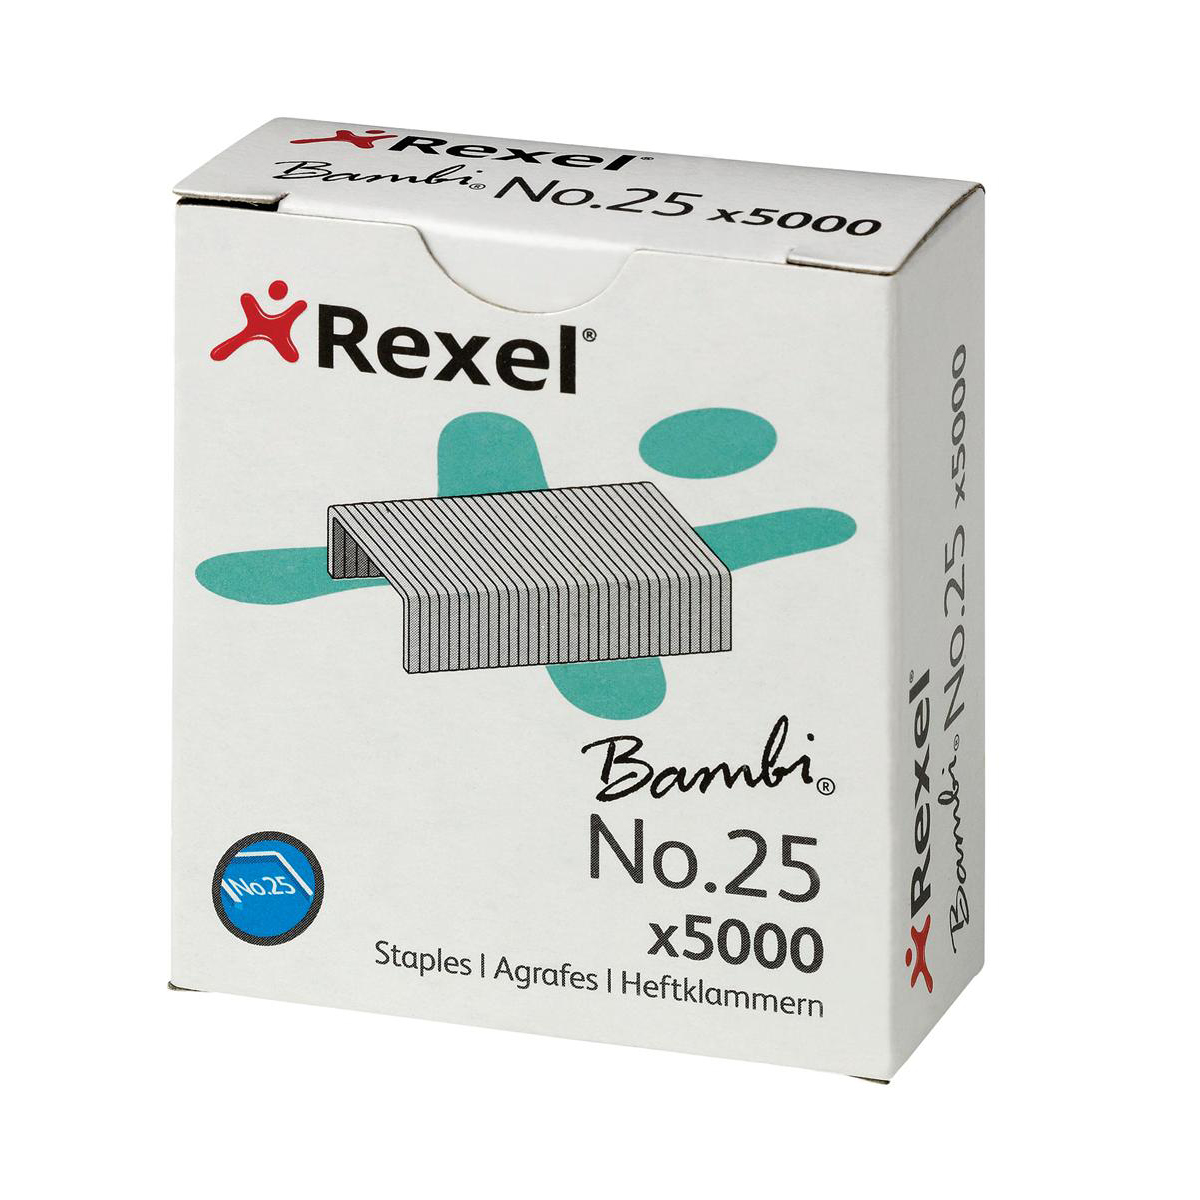 Rexel No. 25 Staples 4mm Ref 05025 Pack 5000